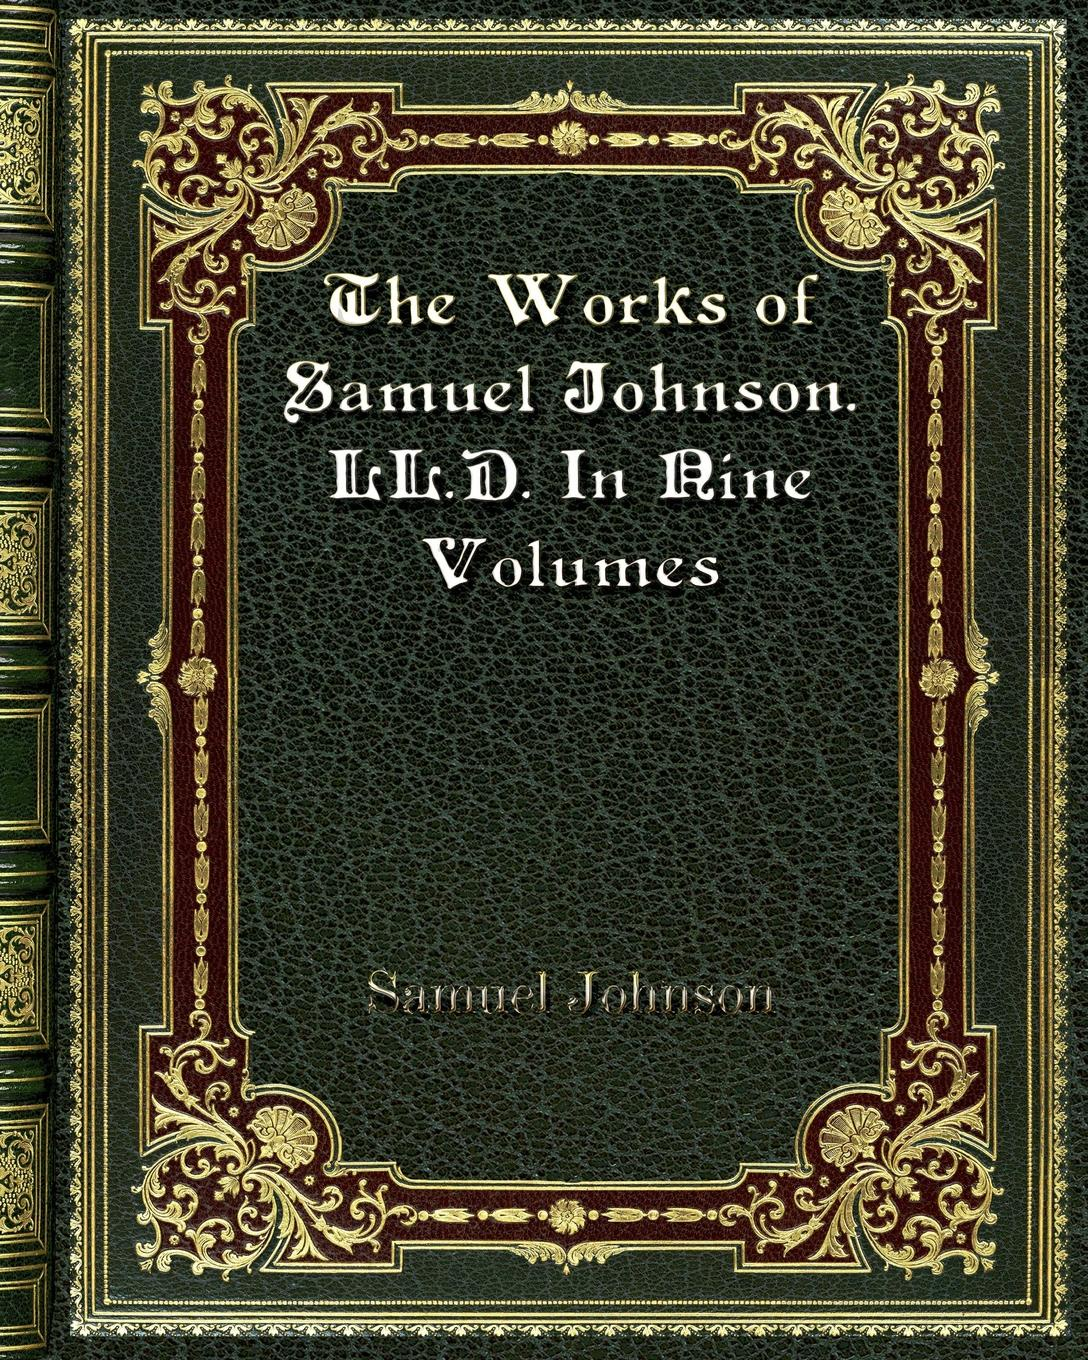 Samuel Johnson The Works of Samuel Johnson. LL. D. In Nine Volumes цена и фото